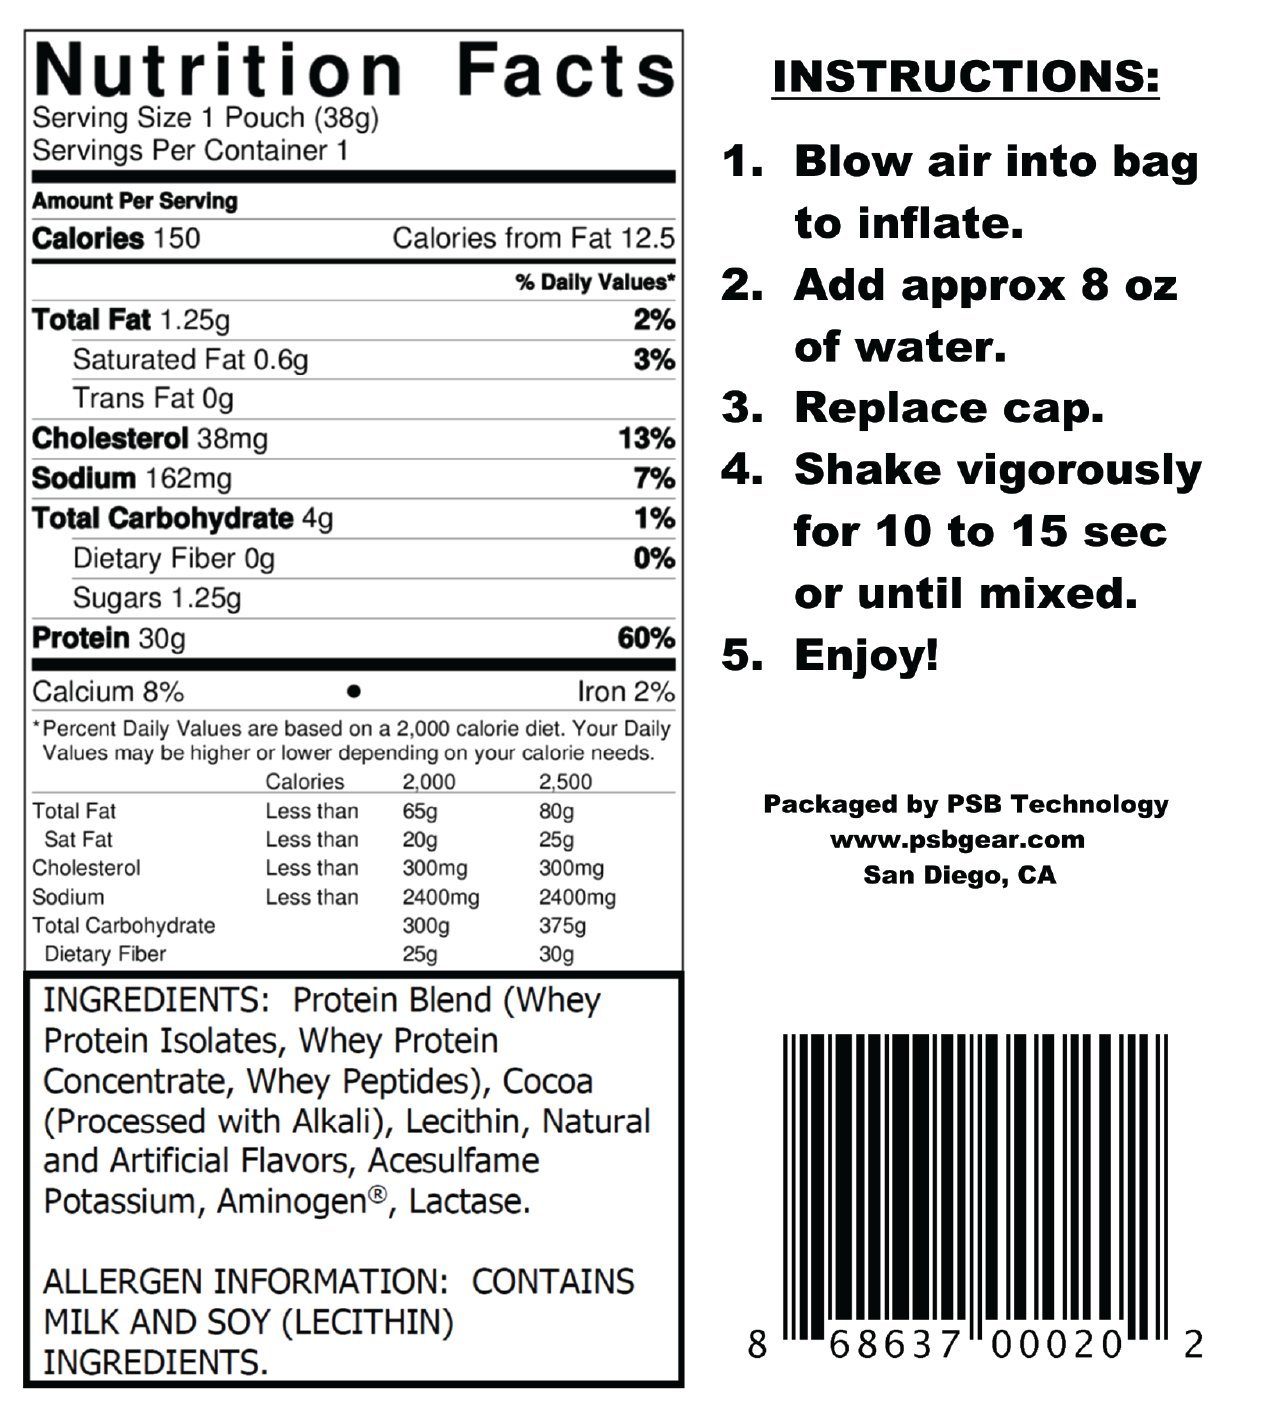 PSB GEAR - WHEY PROTEIN. PRE-FILLED SHAKER POUCH. CASE OF 24 - CHOCOLATE. Add water, shake, and drink. 30 grams of protein. by PSB (Image #4)